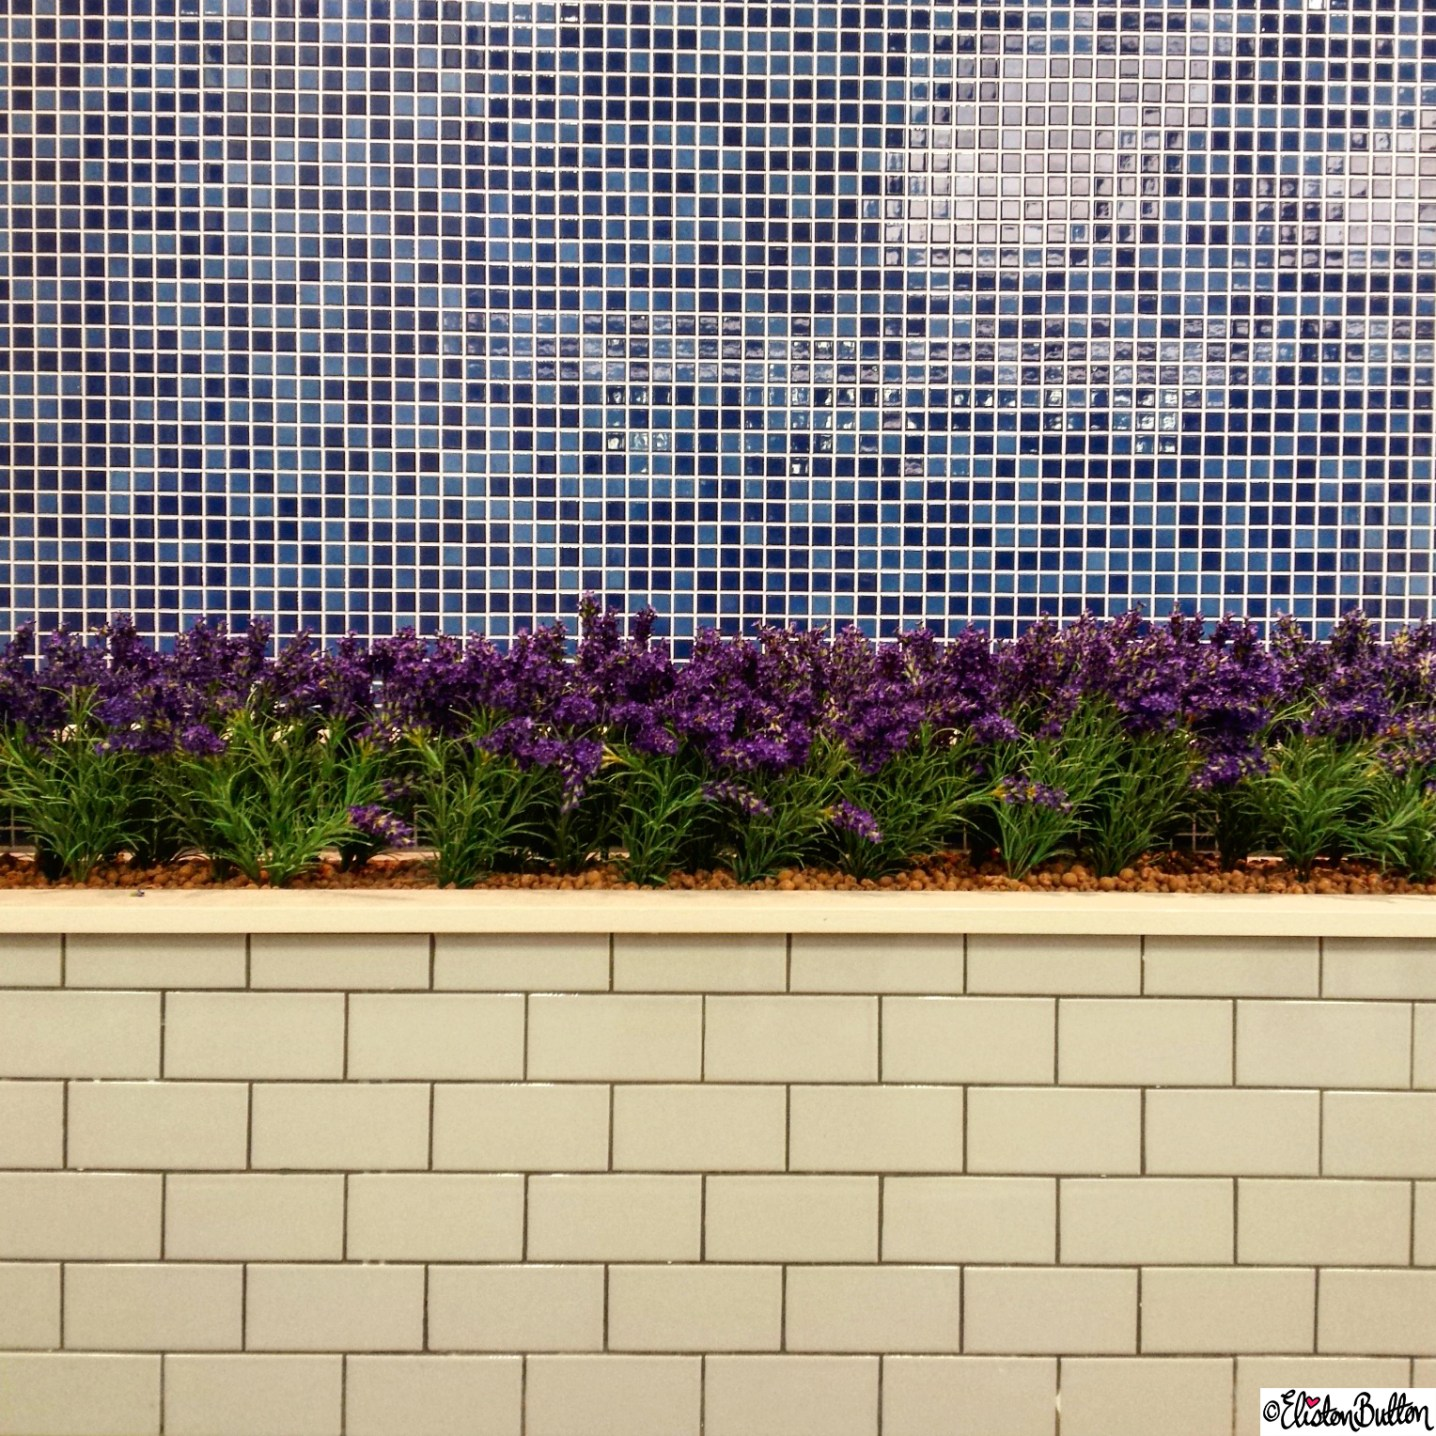 Tiled Wall and Lavender at Carluccios - Around Here...September 2015 at www.elistonbutton.com - Eliston Button - That Crafty Kid – Art, Design, Craft & Adventure.